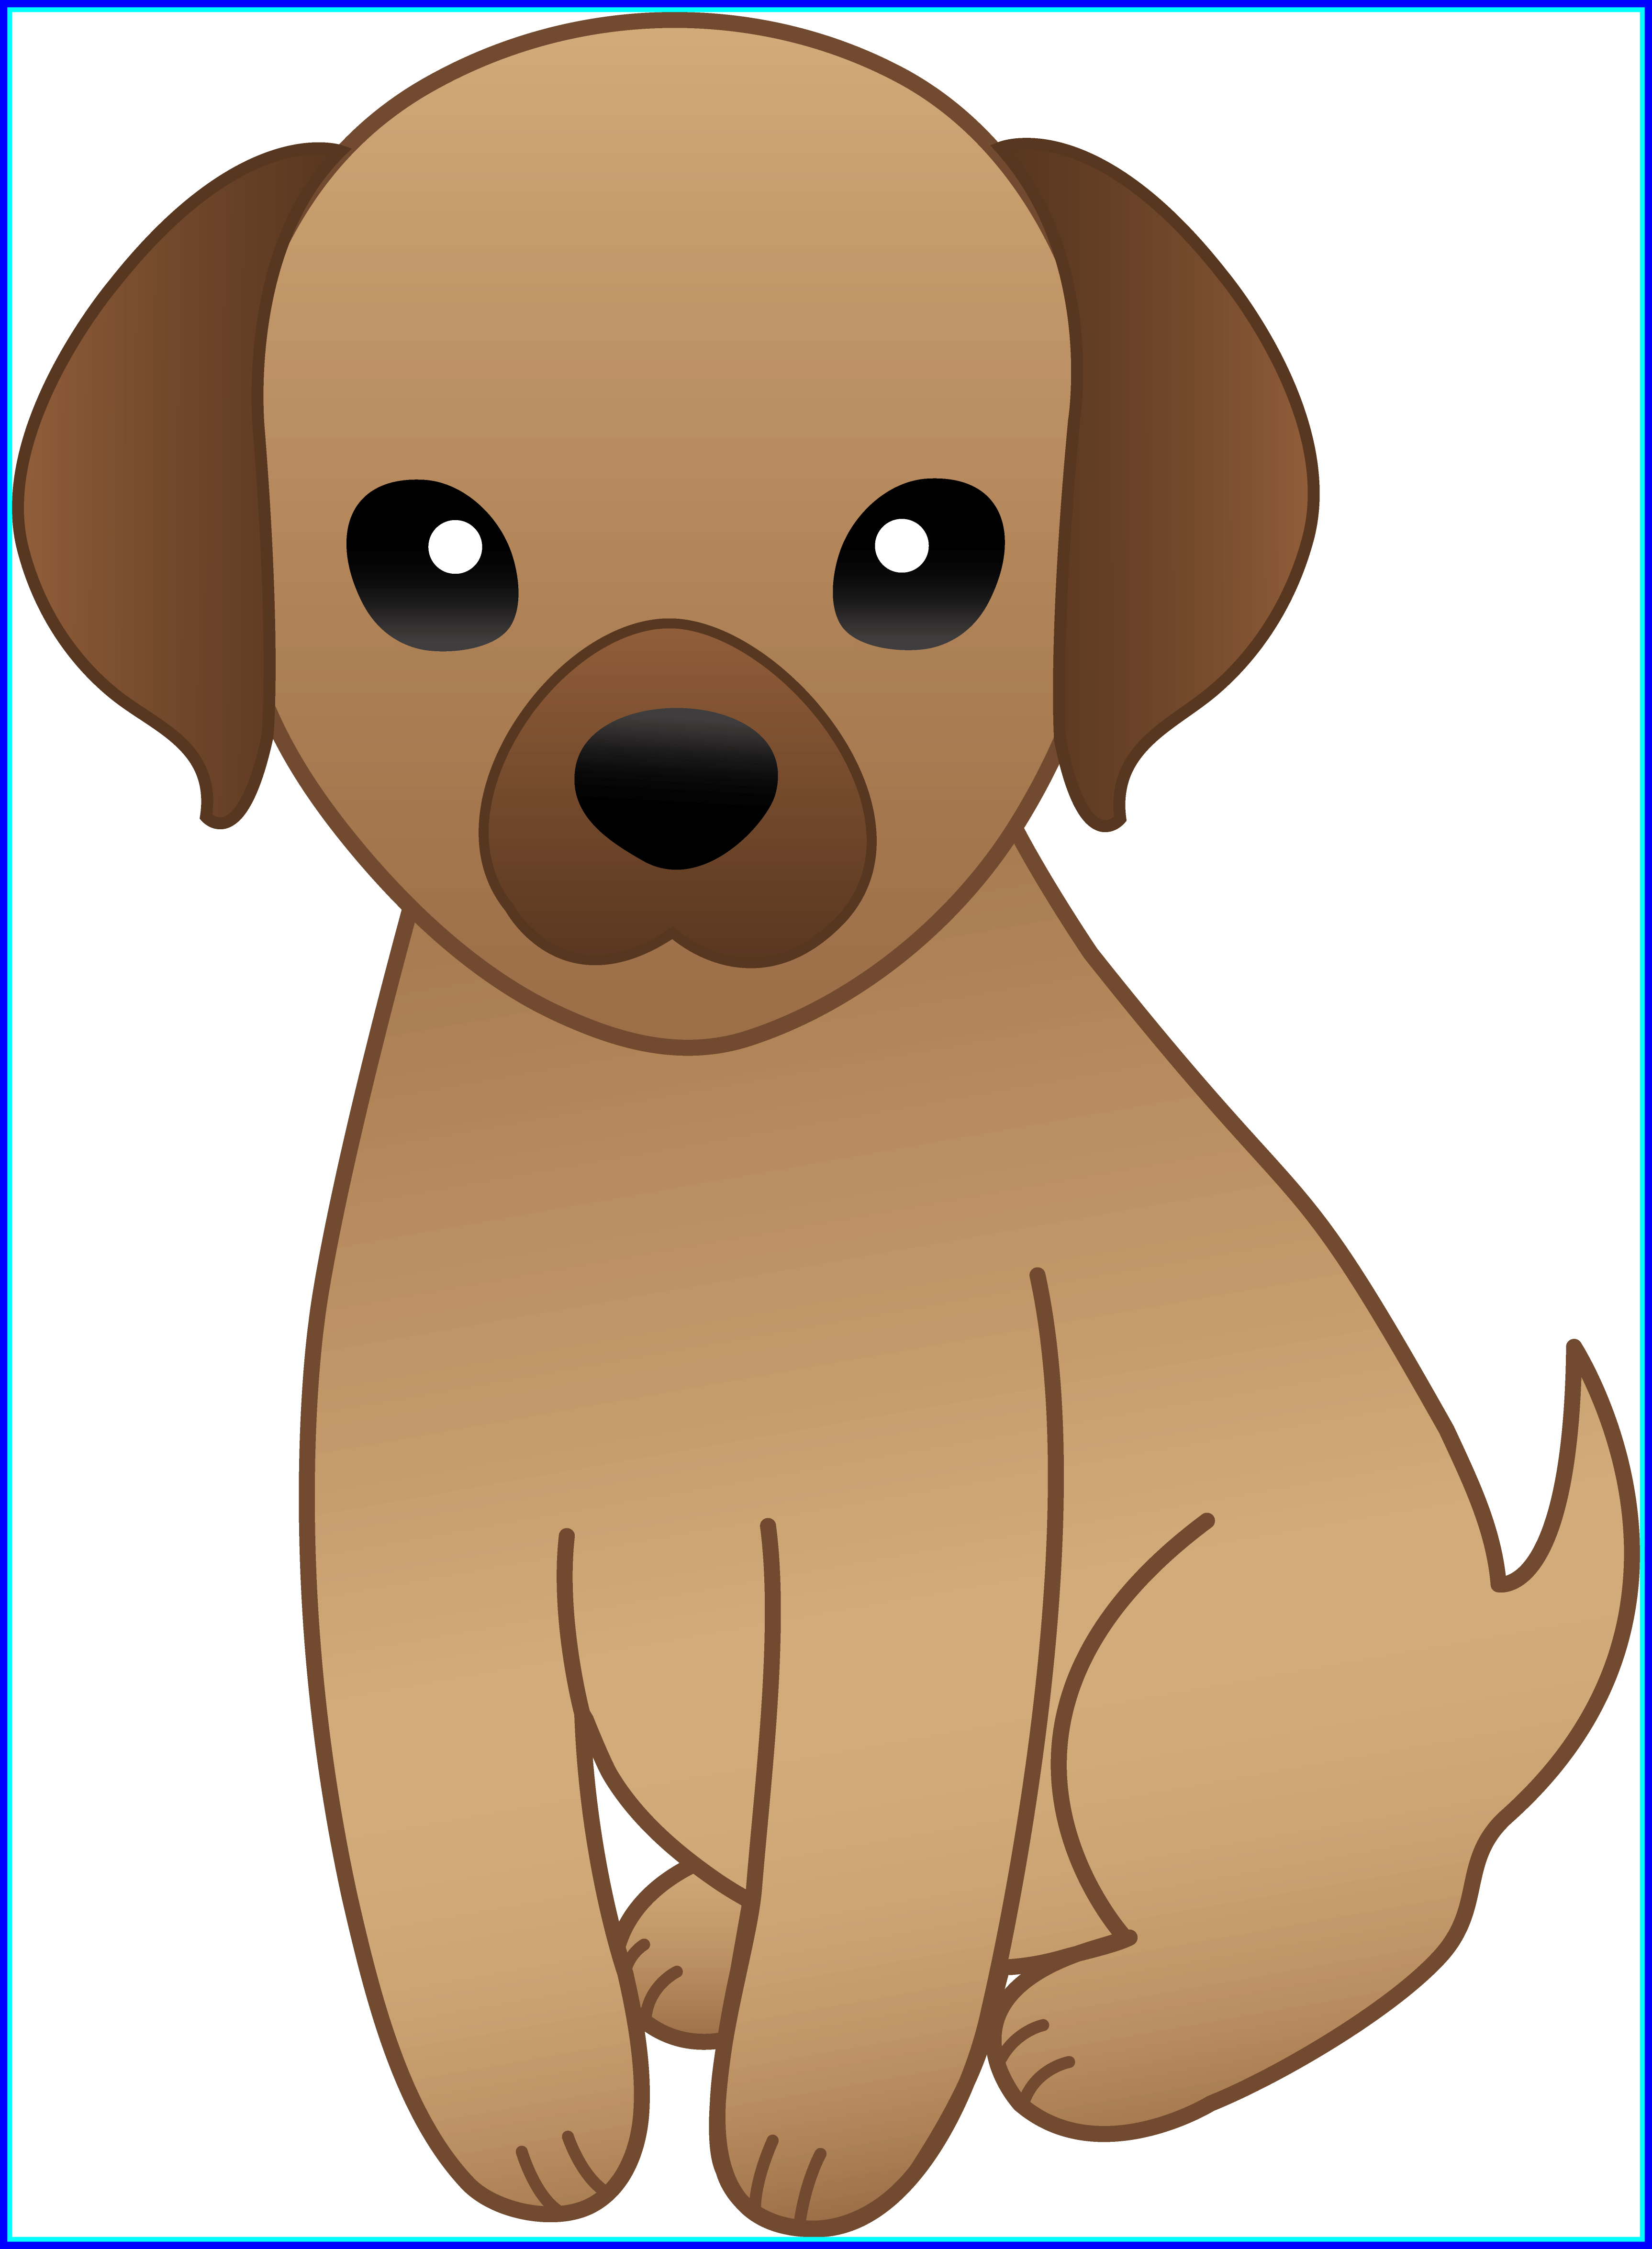 Kid walking dog clipart graphic royalty free download Best Puppy Cute Cartoon Kids Pics For Dog Transparent Background ... graphic royalty free download